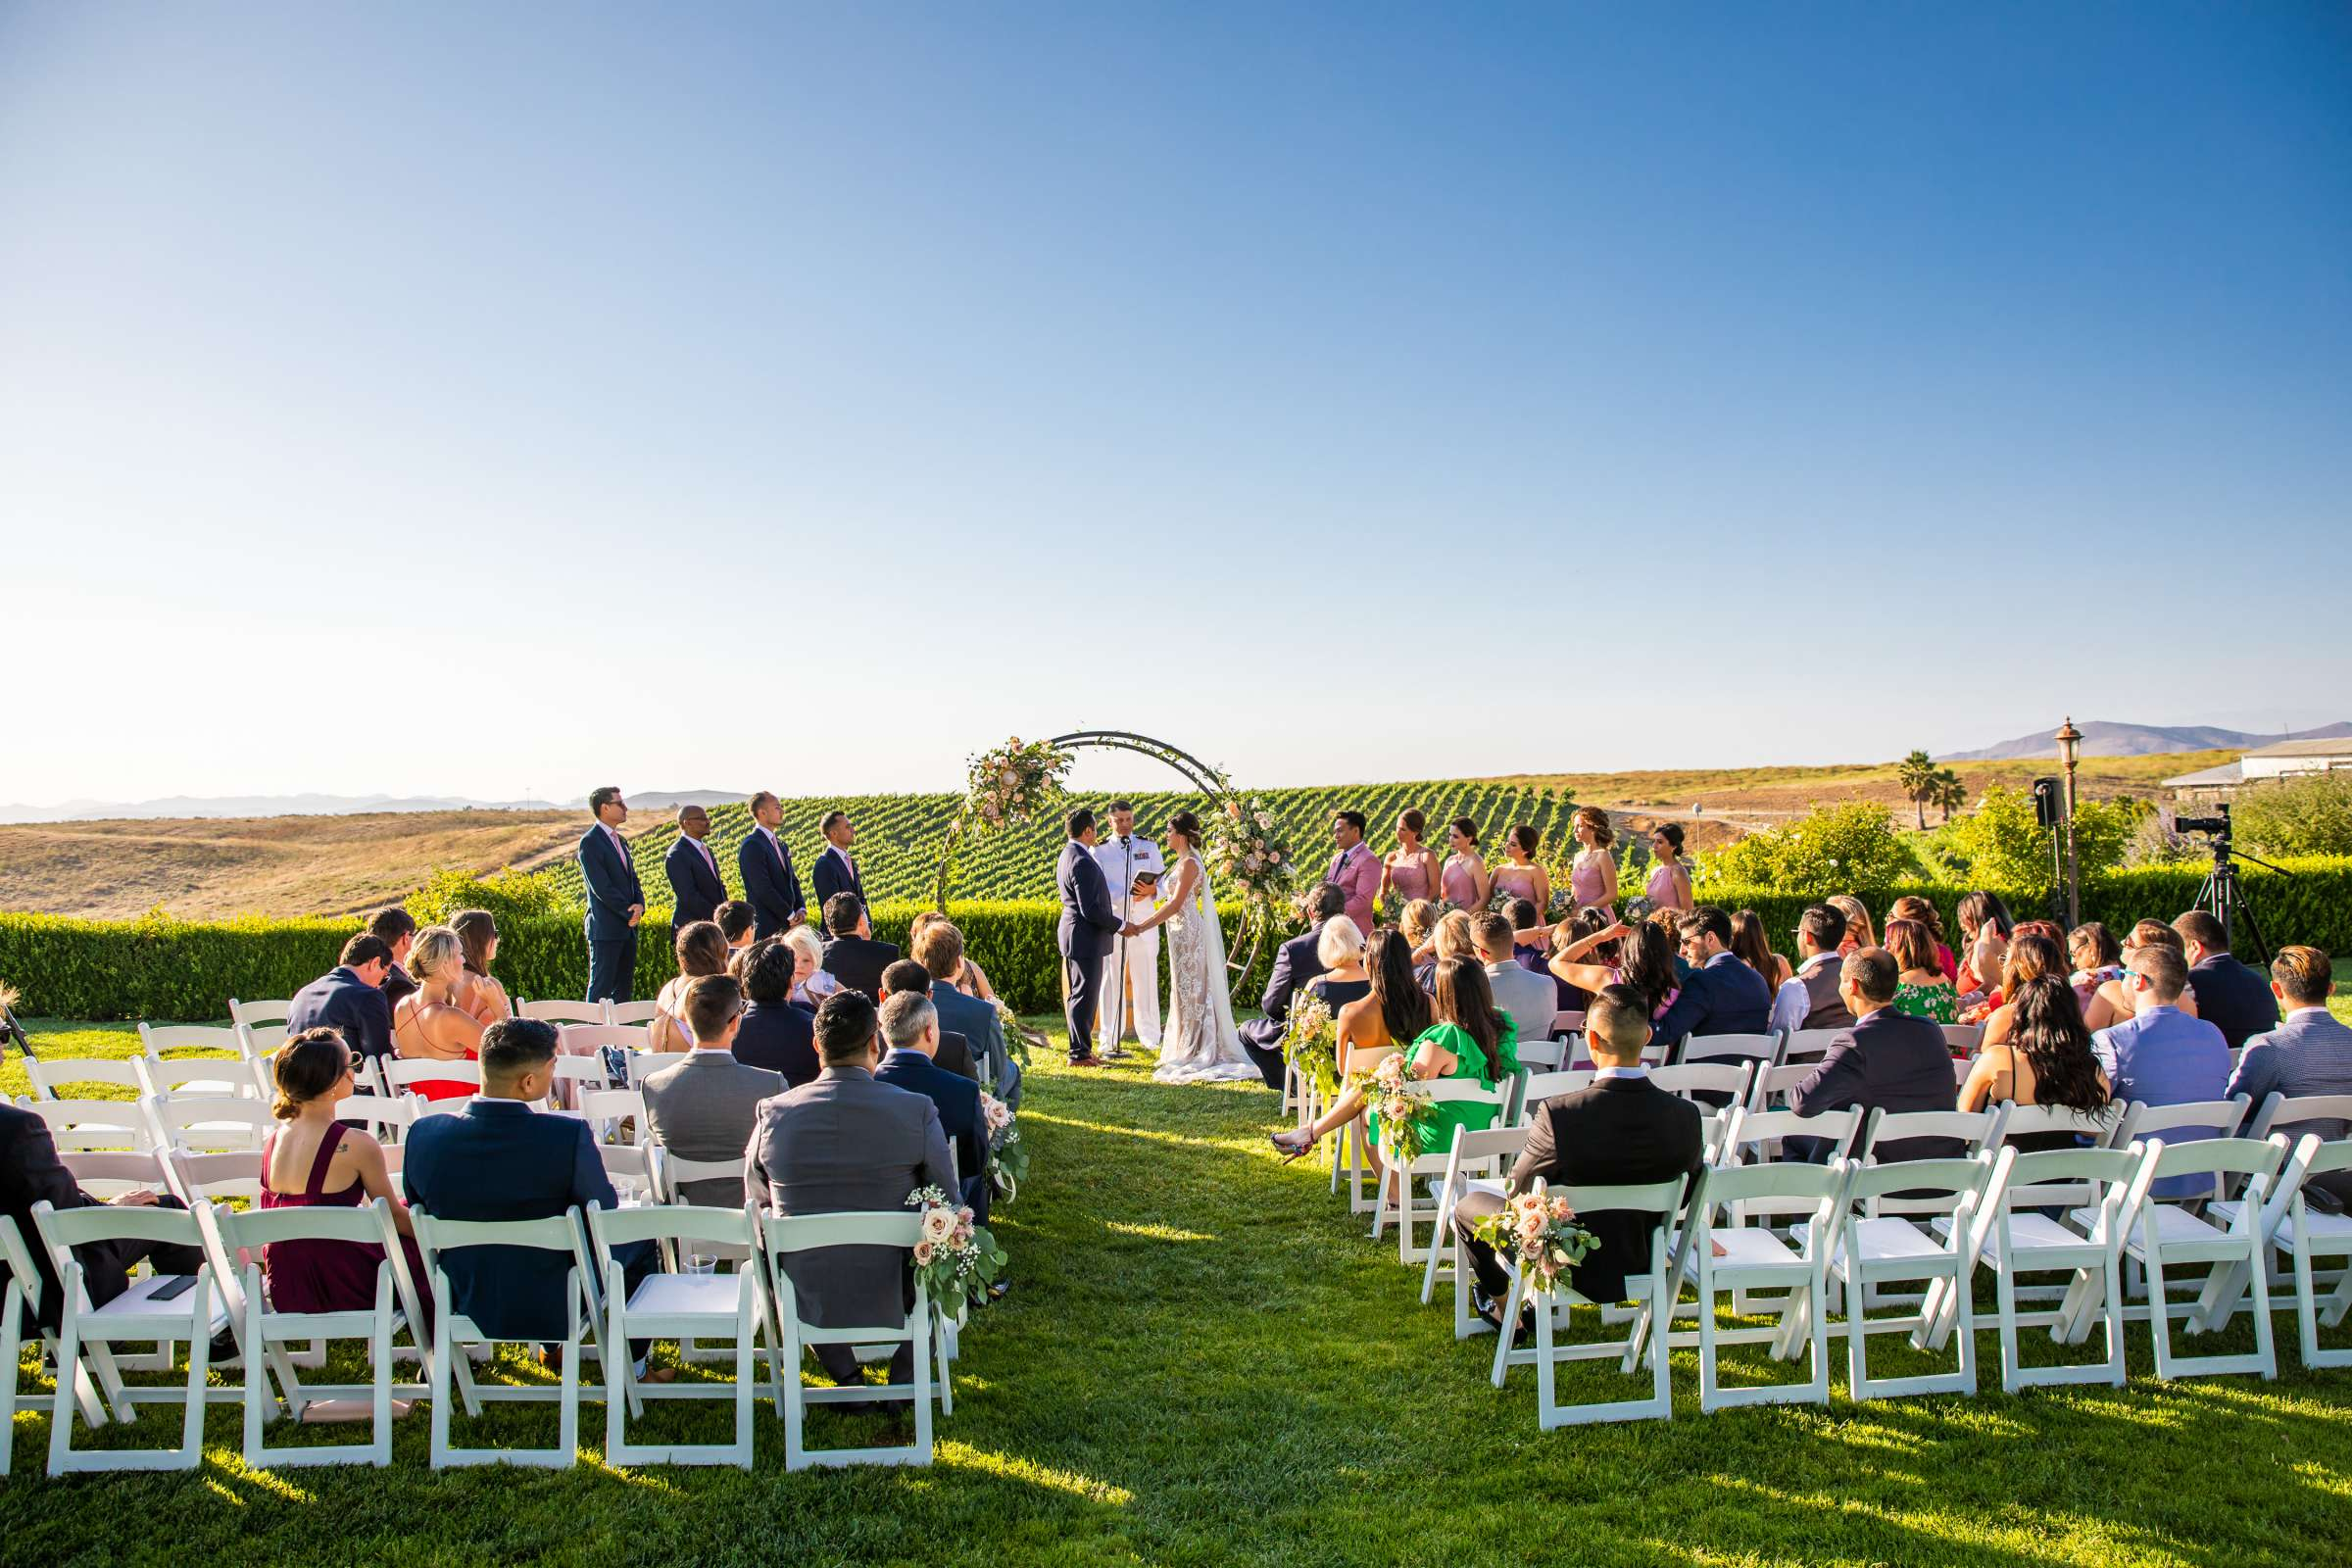 Callaway Vineyards & Winery Wedding coordinated by Michelle Garibay Events, Chelsea and Luis carlos Wedding Photo #91 by True Photography